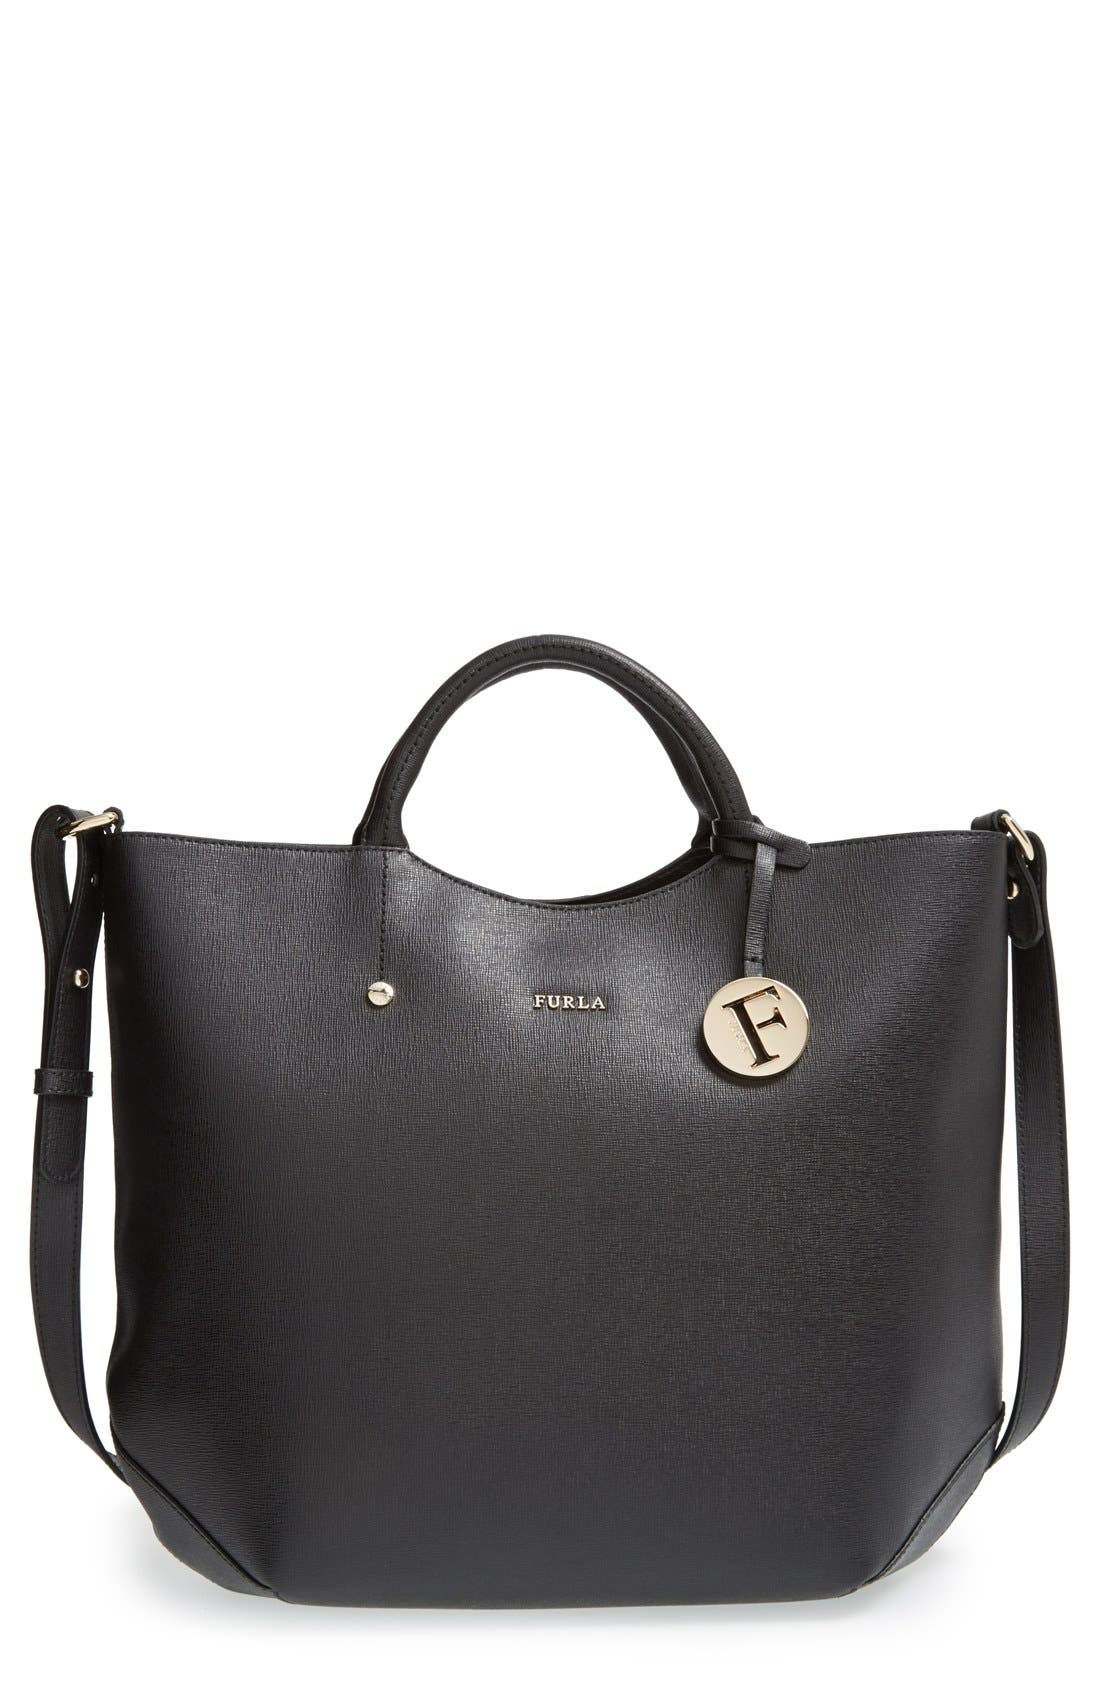 Alternate Image 1 Selected - Furla 'Alissa - Large' Saffiano Leather Tote